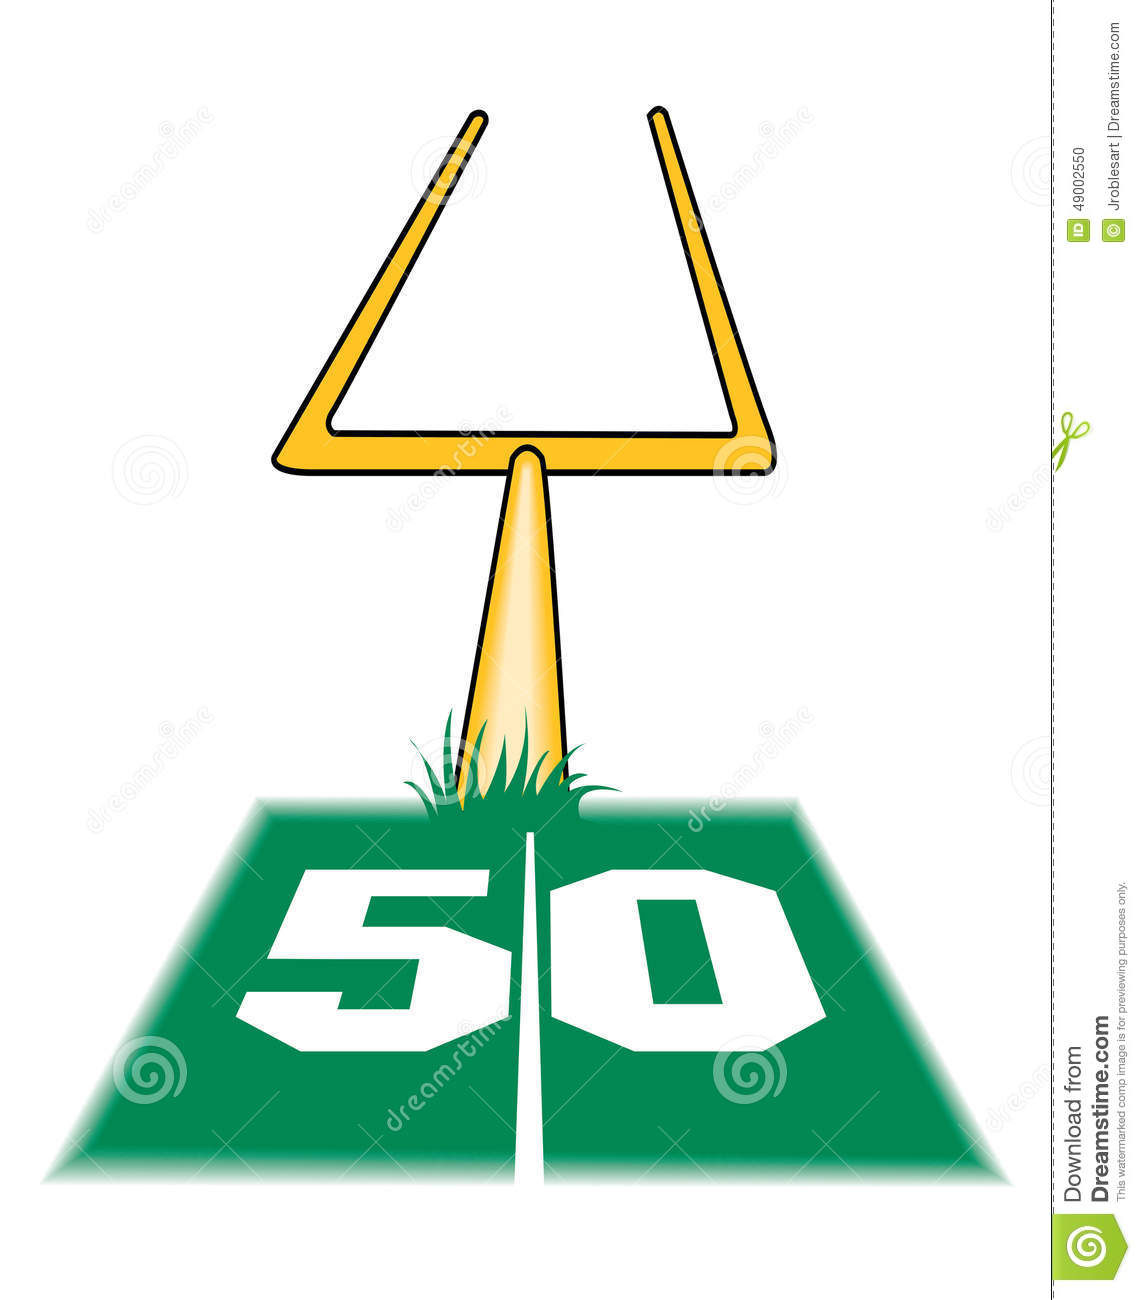 1141x1300 Clipart Football Goal Post